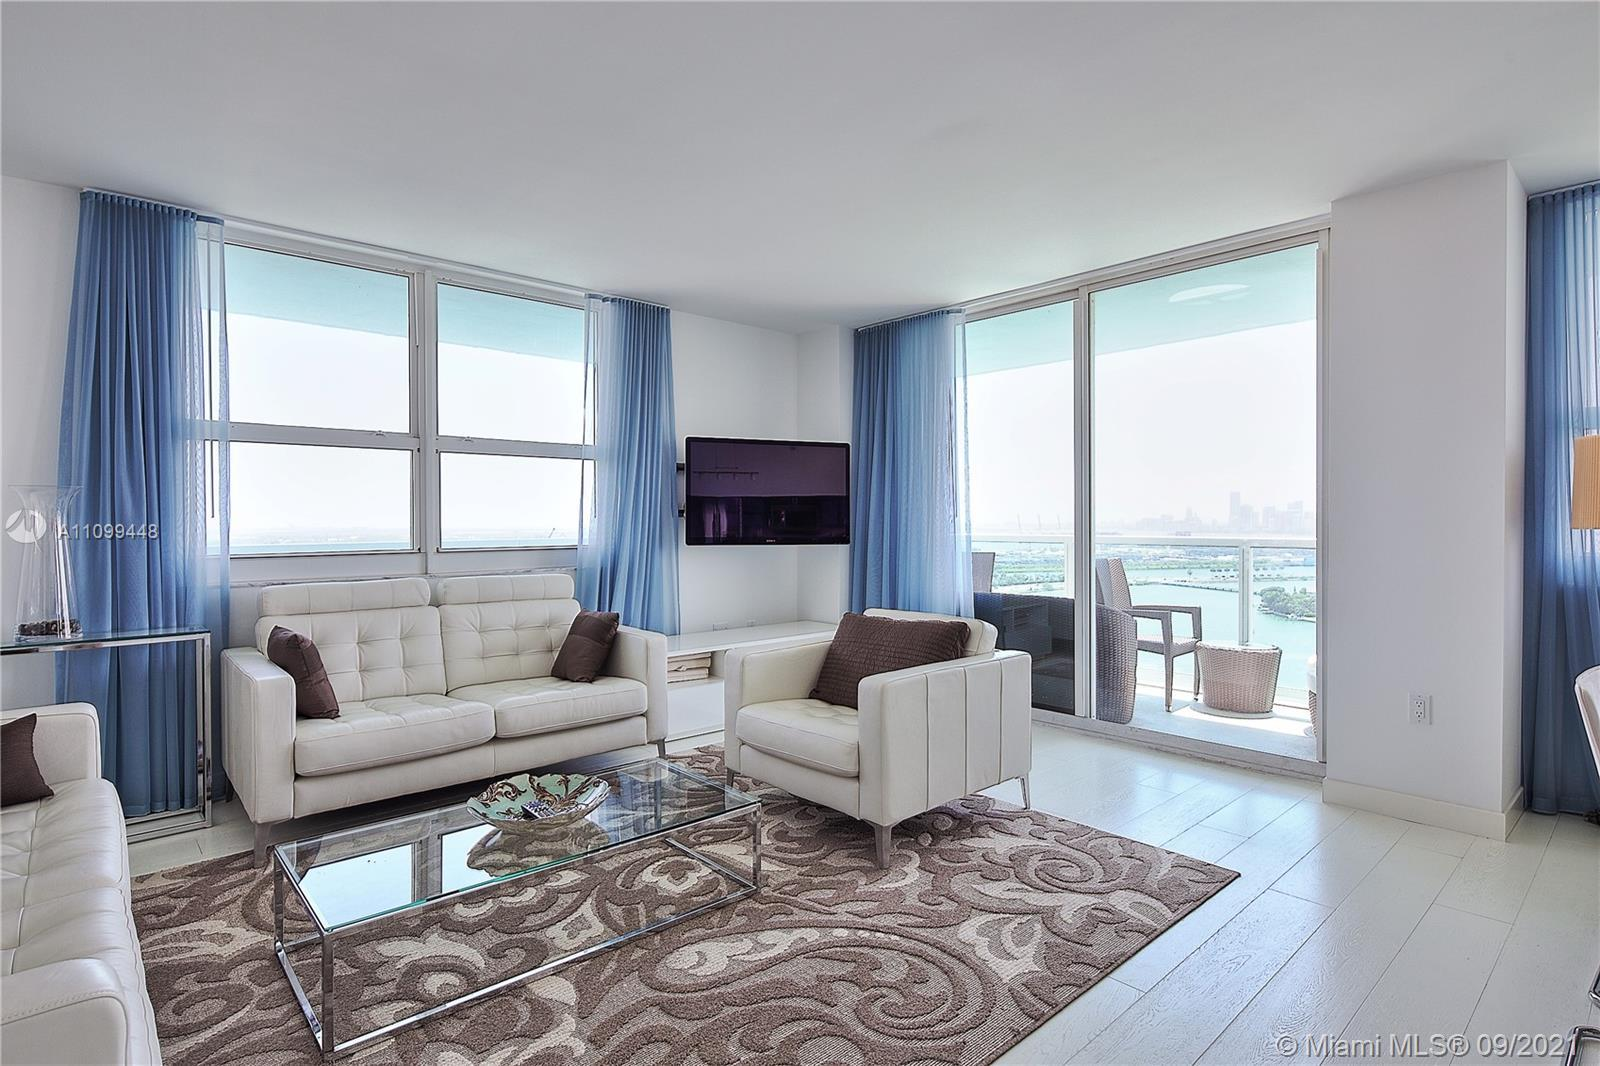 Stunning Corner Unit with direct view to the bay and Ocean. Night view is breathtaking. Water view